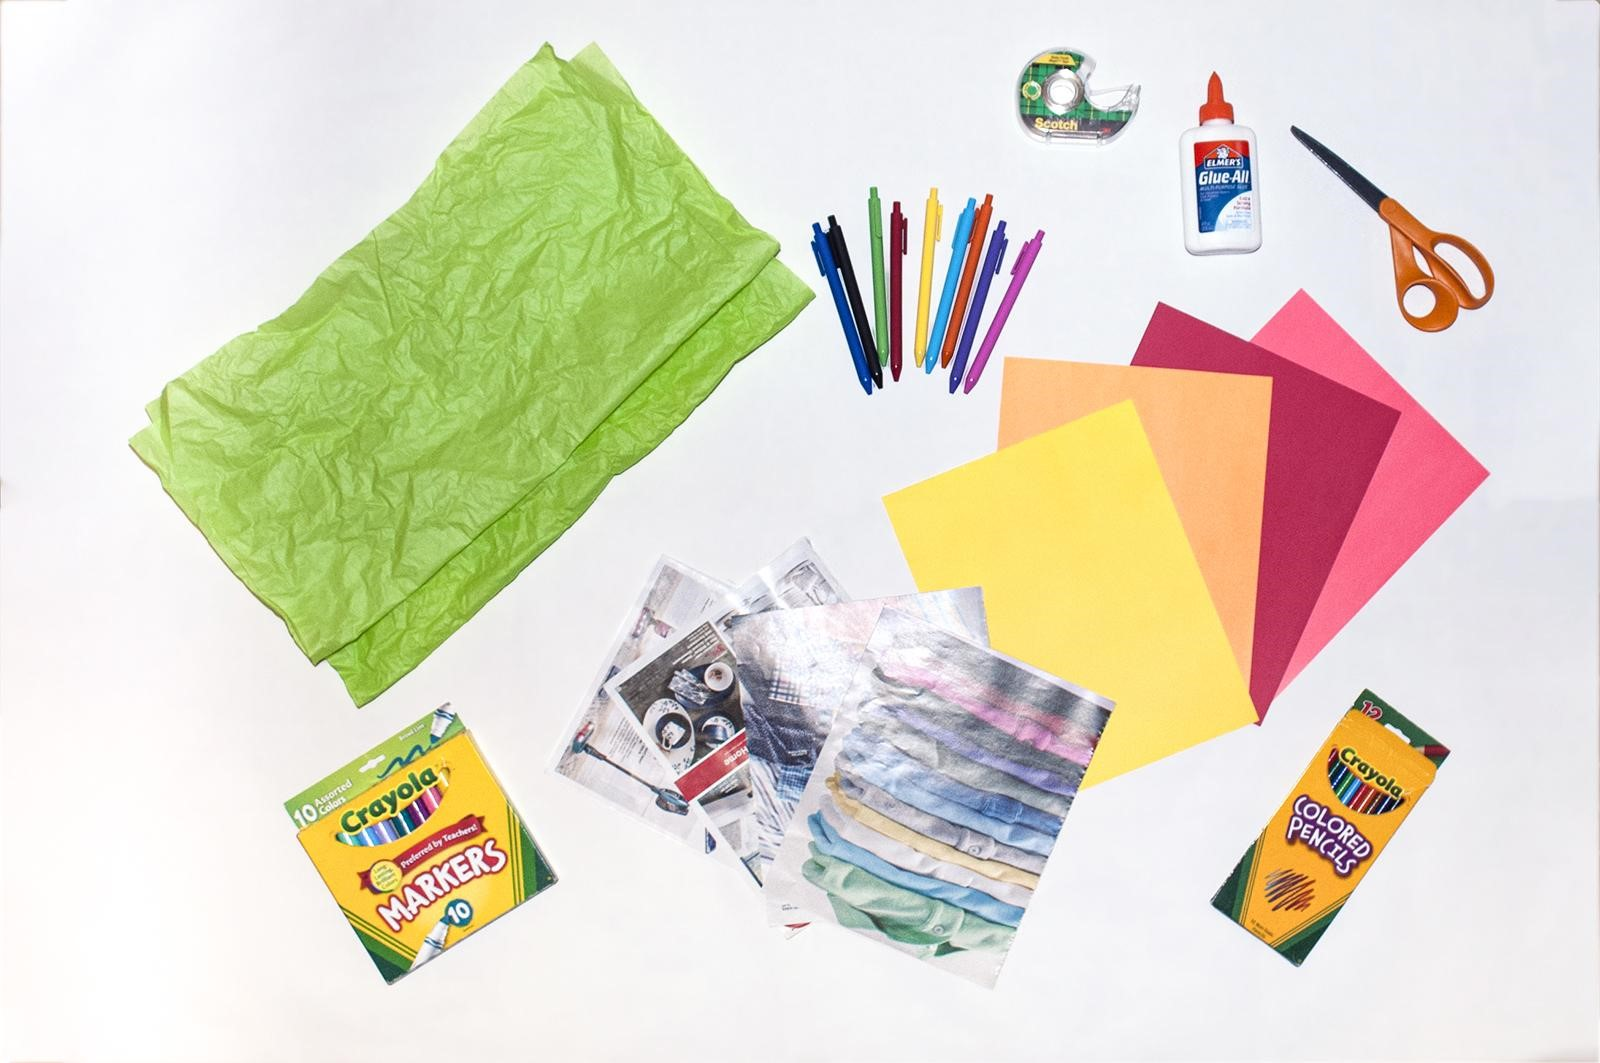 Art supplies including tissue paper, scissors, glue, colored paper, and markers,